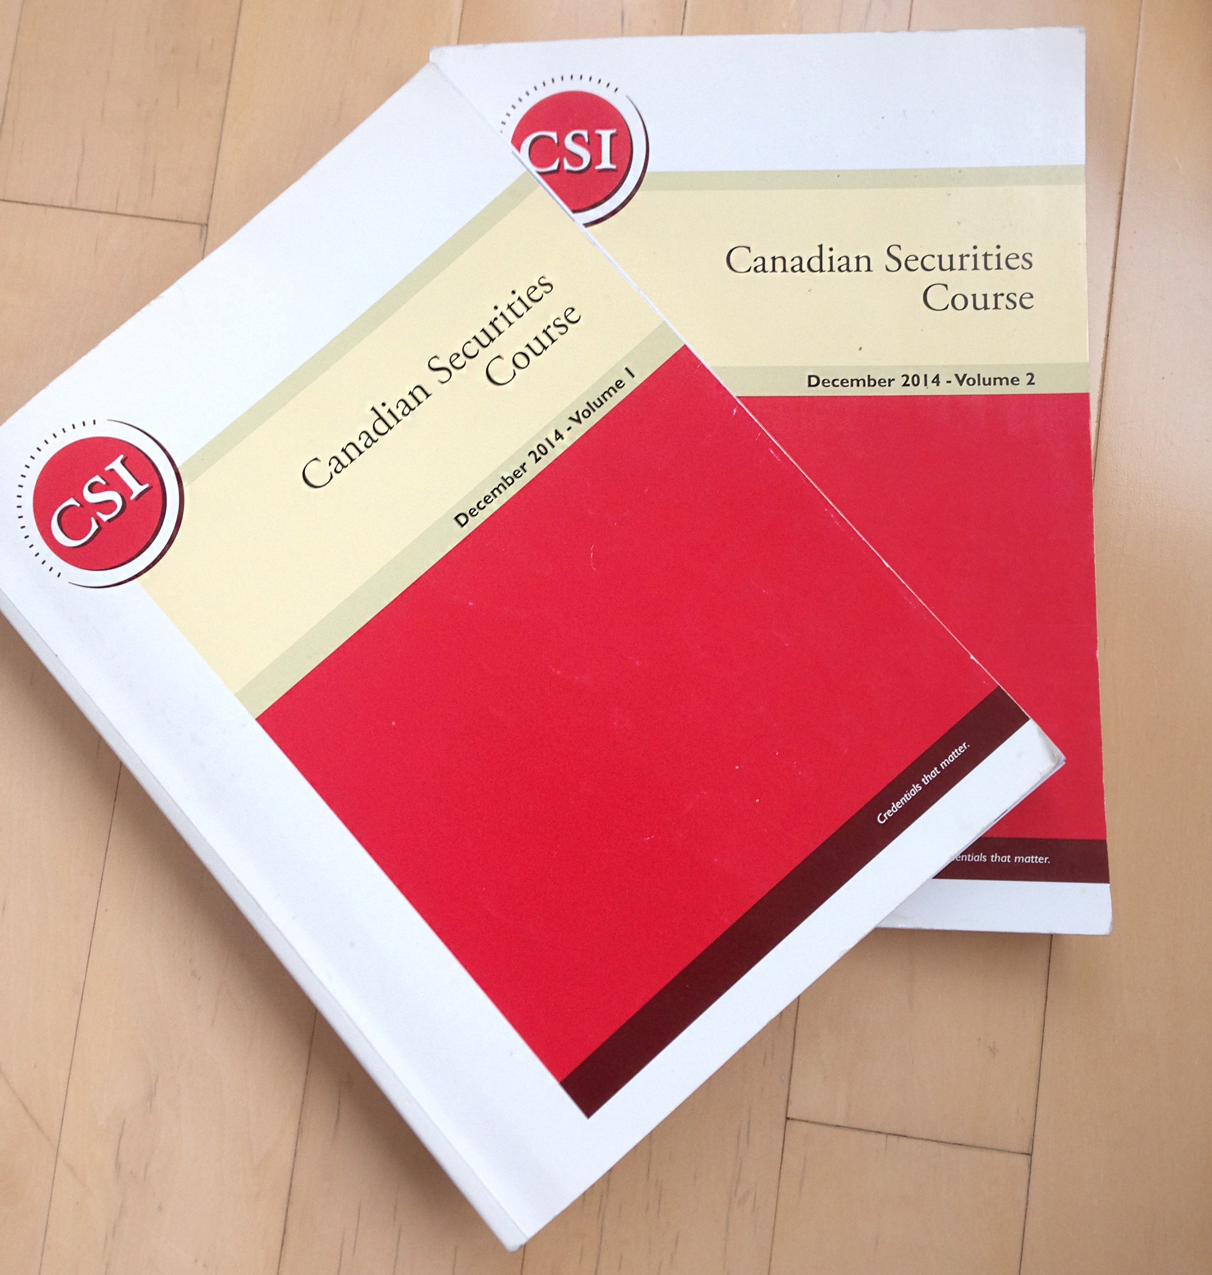 The Canadian Securities Course